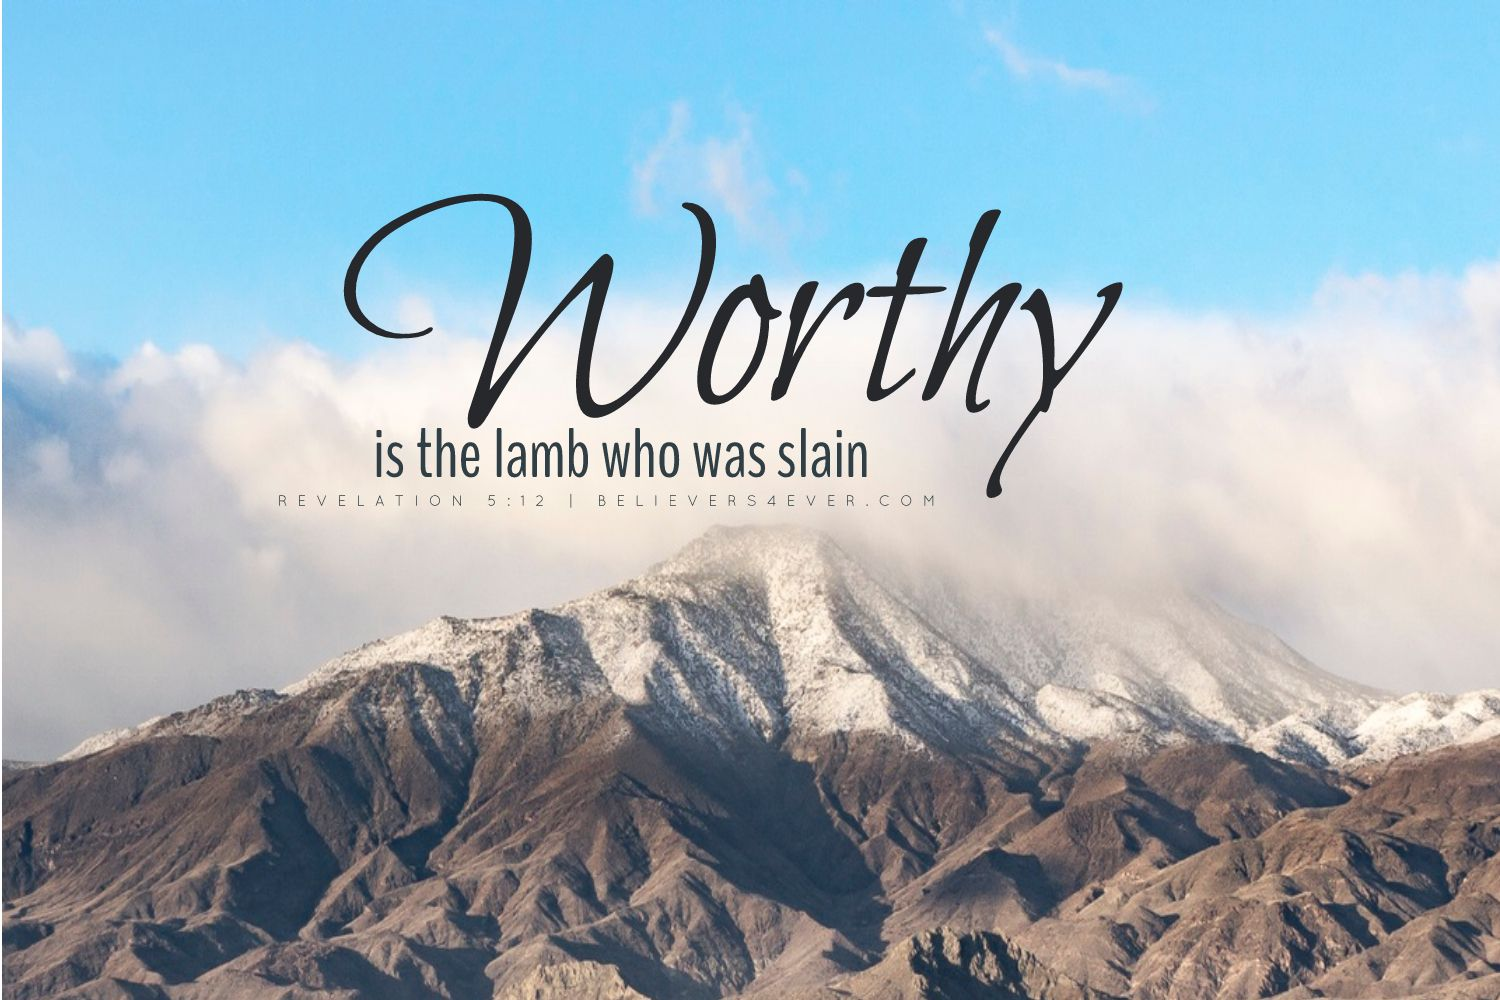 Worthy Is The Lamb Believers4ever Com Christian Wallpaper Free Christian Wallpaper Inspirational Wallpapers